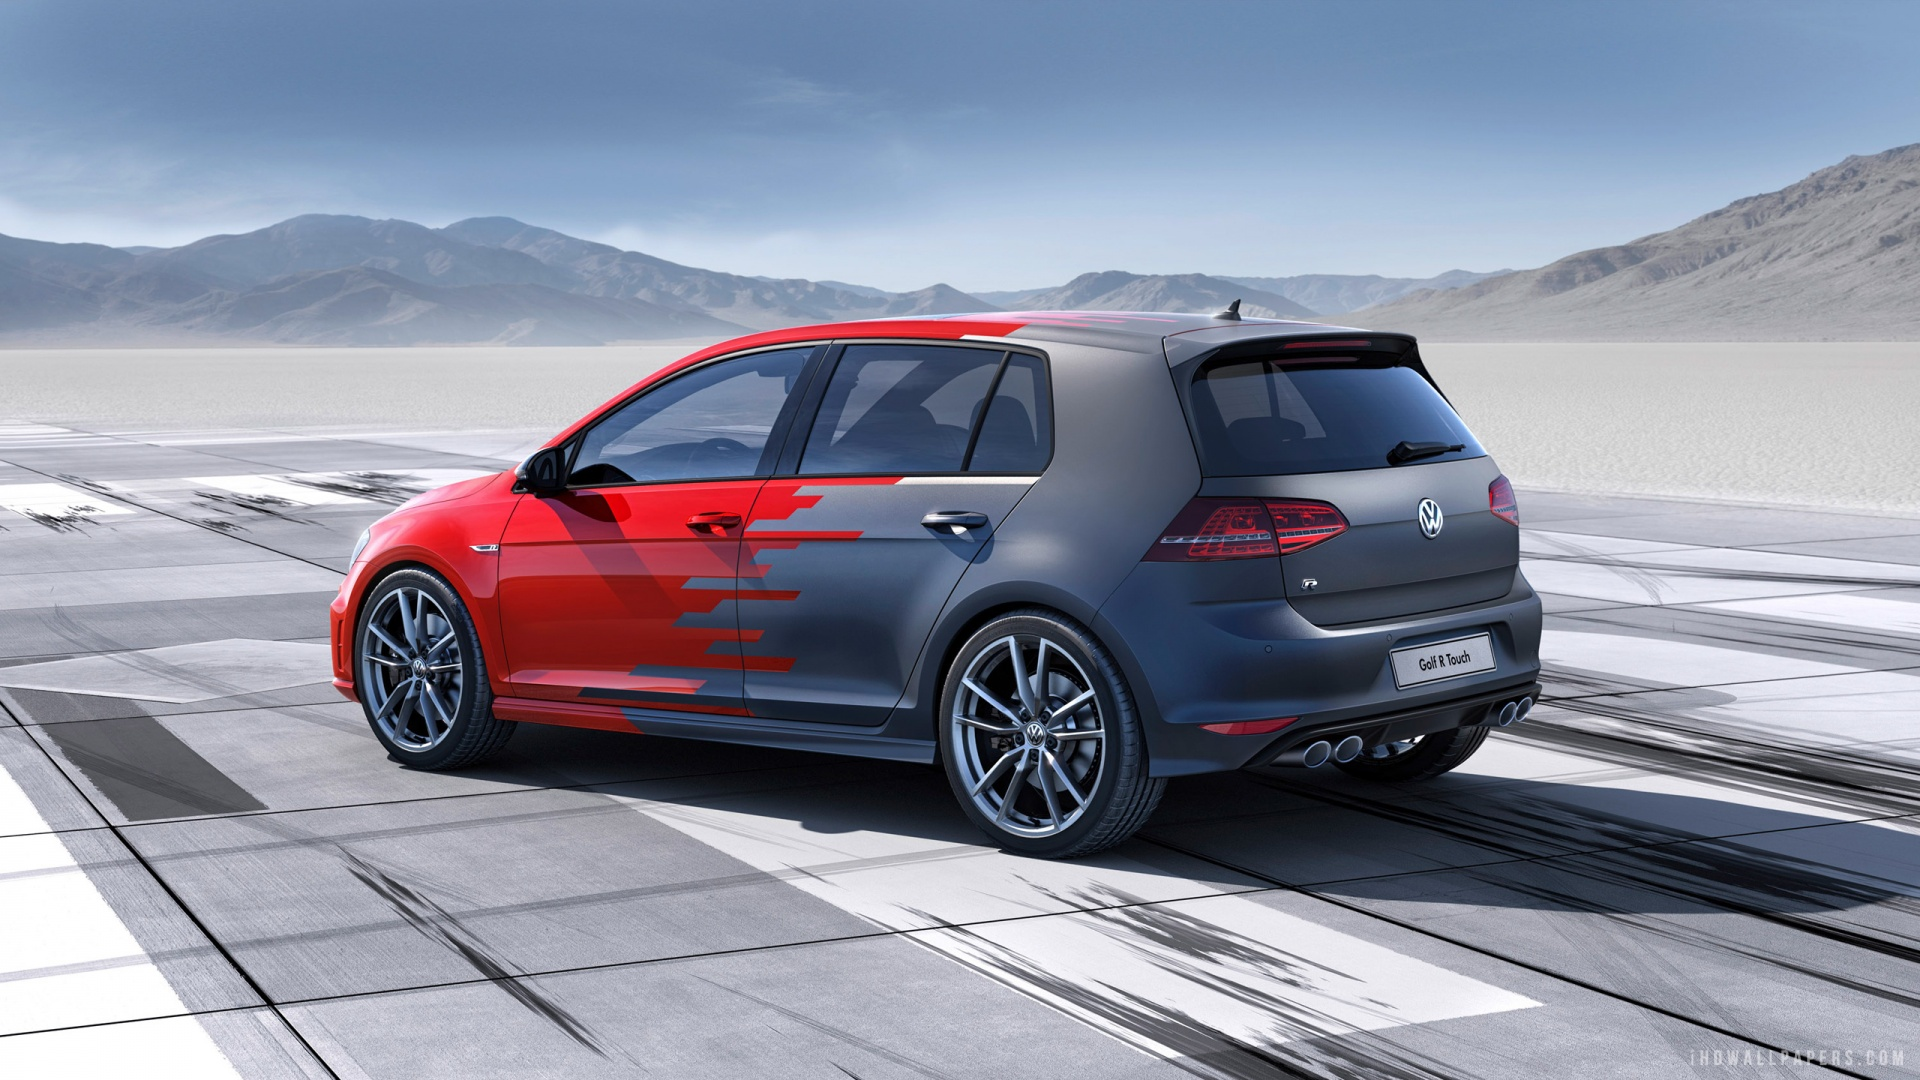 Volkswagen Golf R Touch Concept 2015 HD Wallpaper   iHD Wallpapers 1920x1080